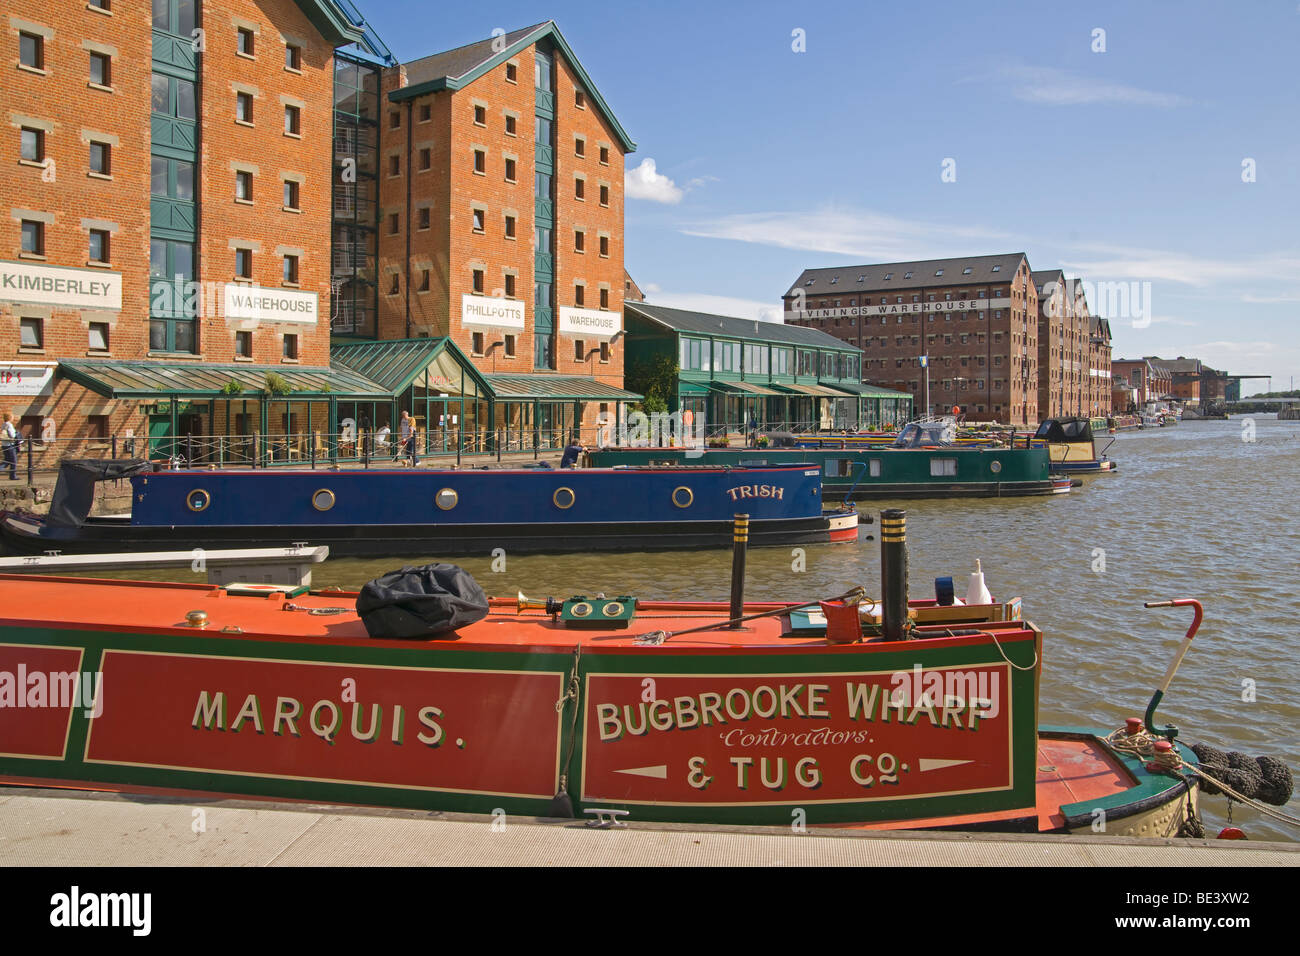 Gloucester docks, houseboats, urban renewal, Gloucestershire, Cotswolds, England, July, 2009 - Stock Image